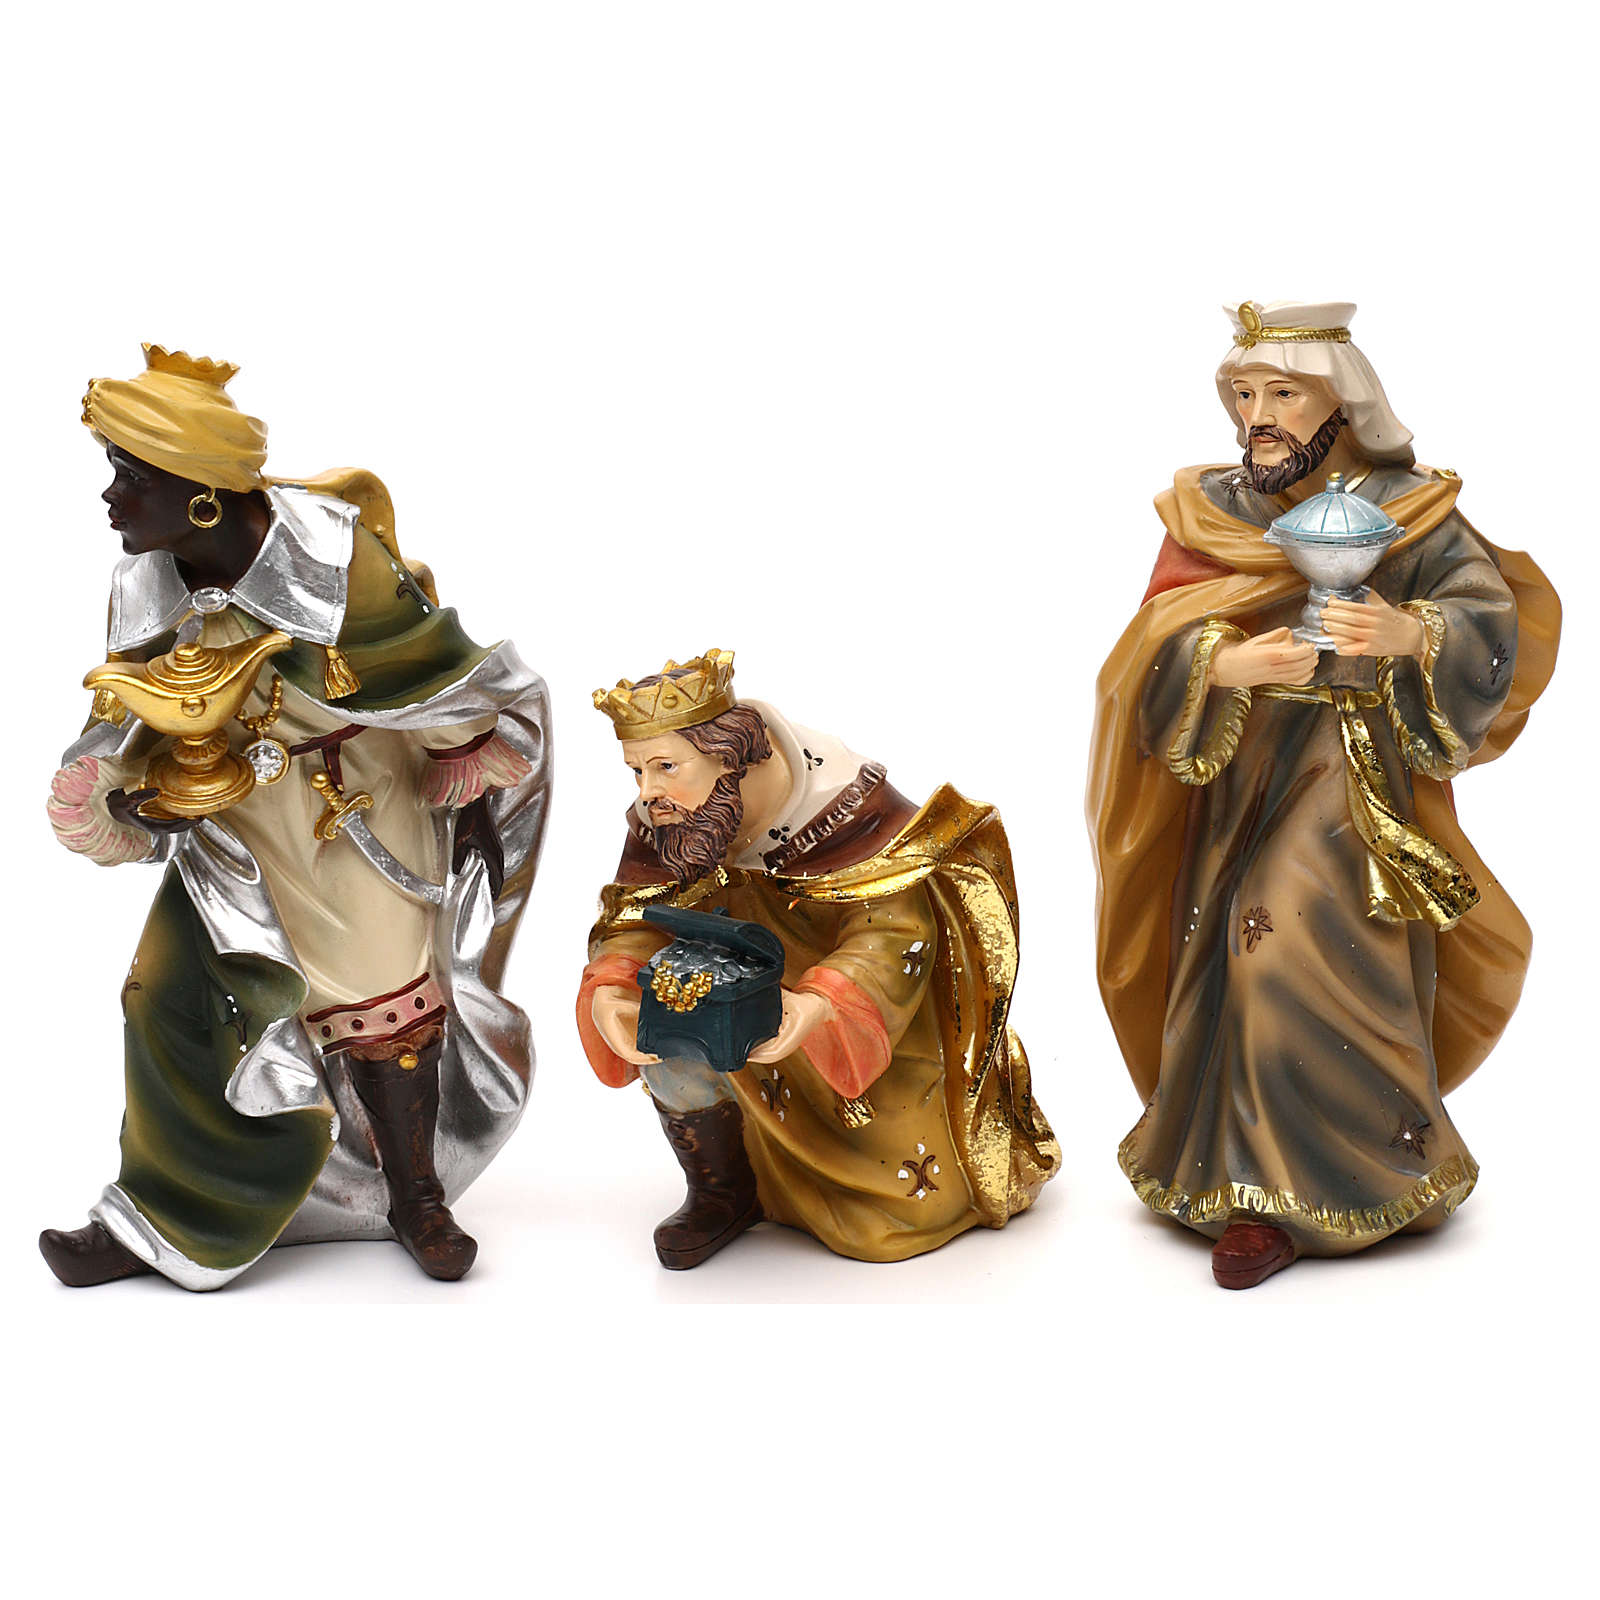 Nativity scene set in painted resin, Mathias model 19 cm 4